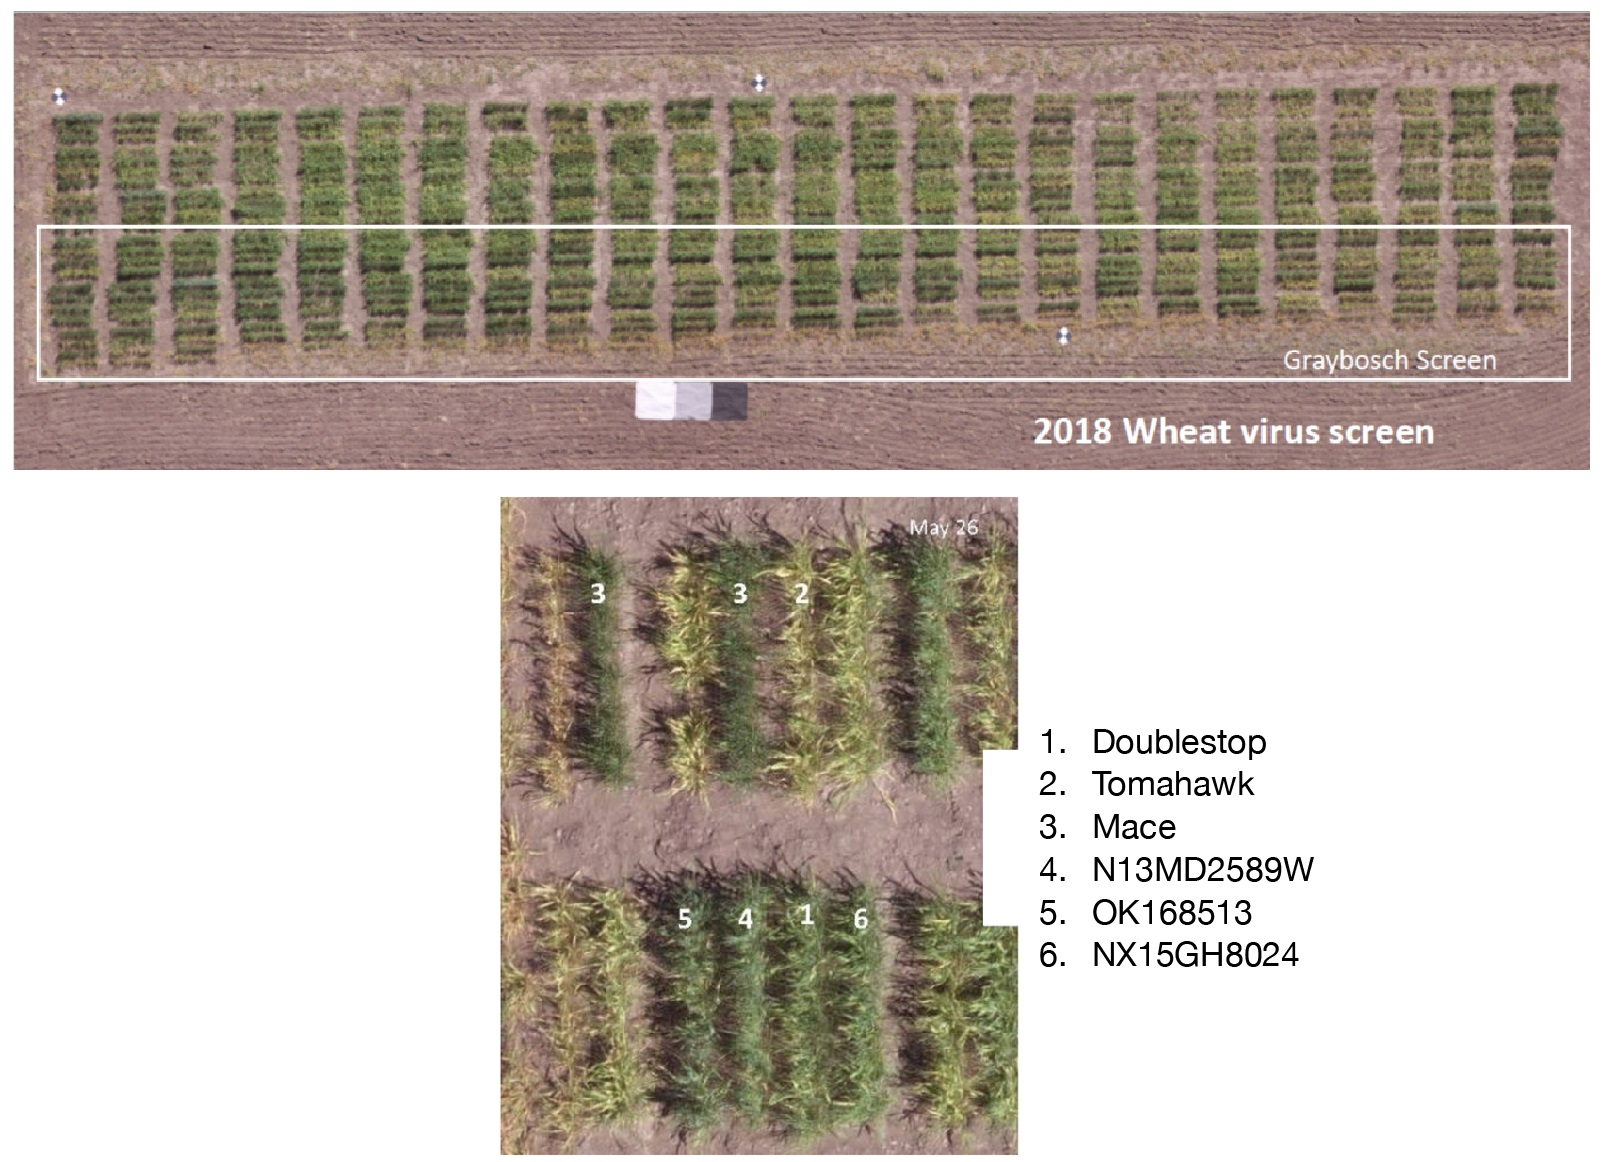 Aerial view of the wheat streak mosaic screening nursery in Nebraska (top photo). The bottom photo is a closer view of individual wheat lines containing Doublestop CL+, Tomahawk (susceptible check), Mace (resistant check) and a WIT experimental line confirmed to carry the gene Wsm1 that will be further discussed in Carver's report.